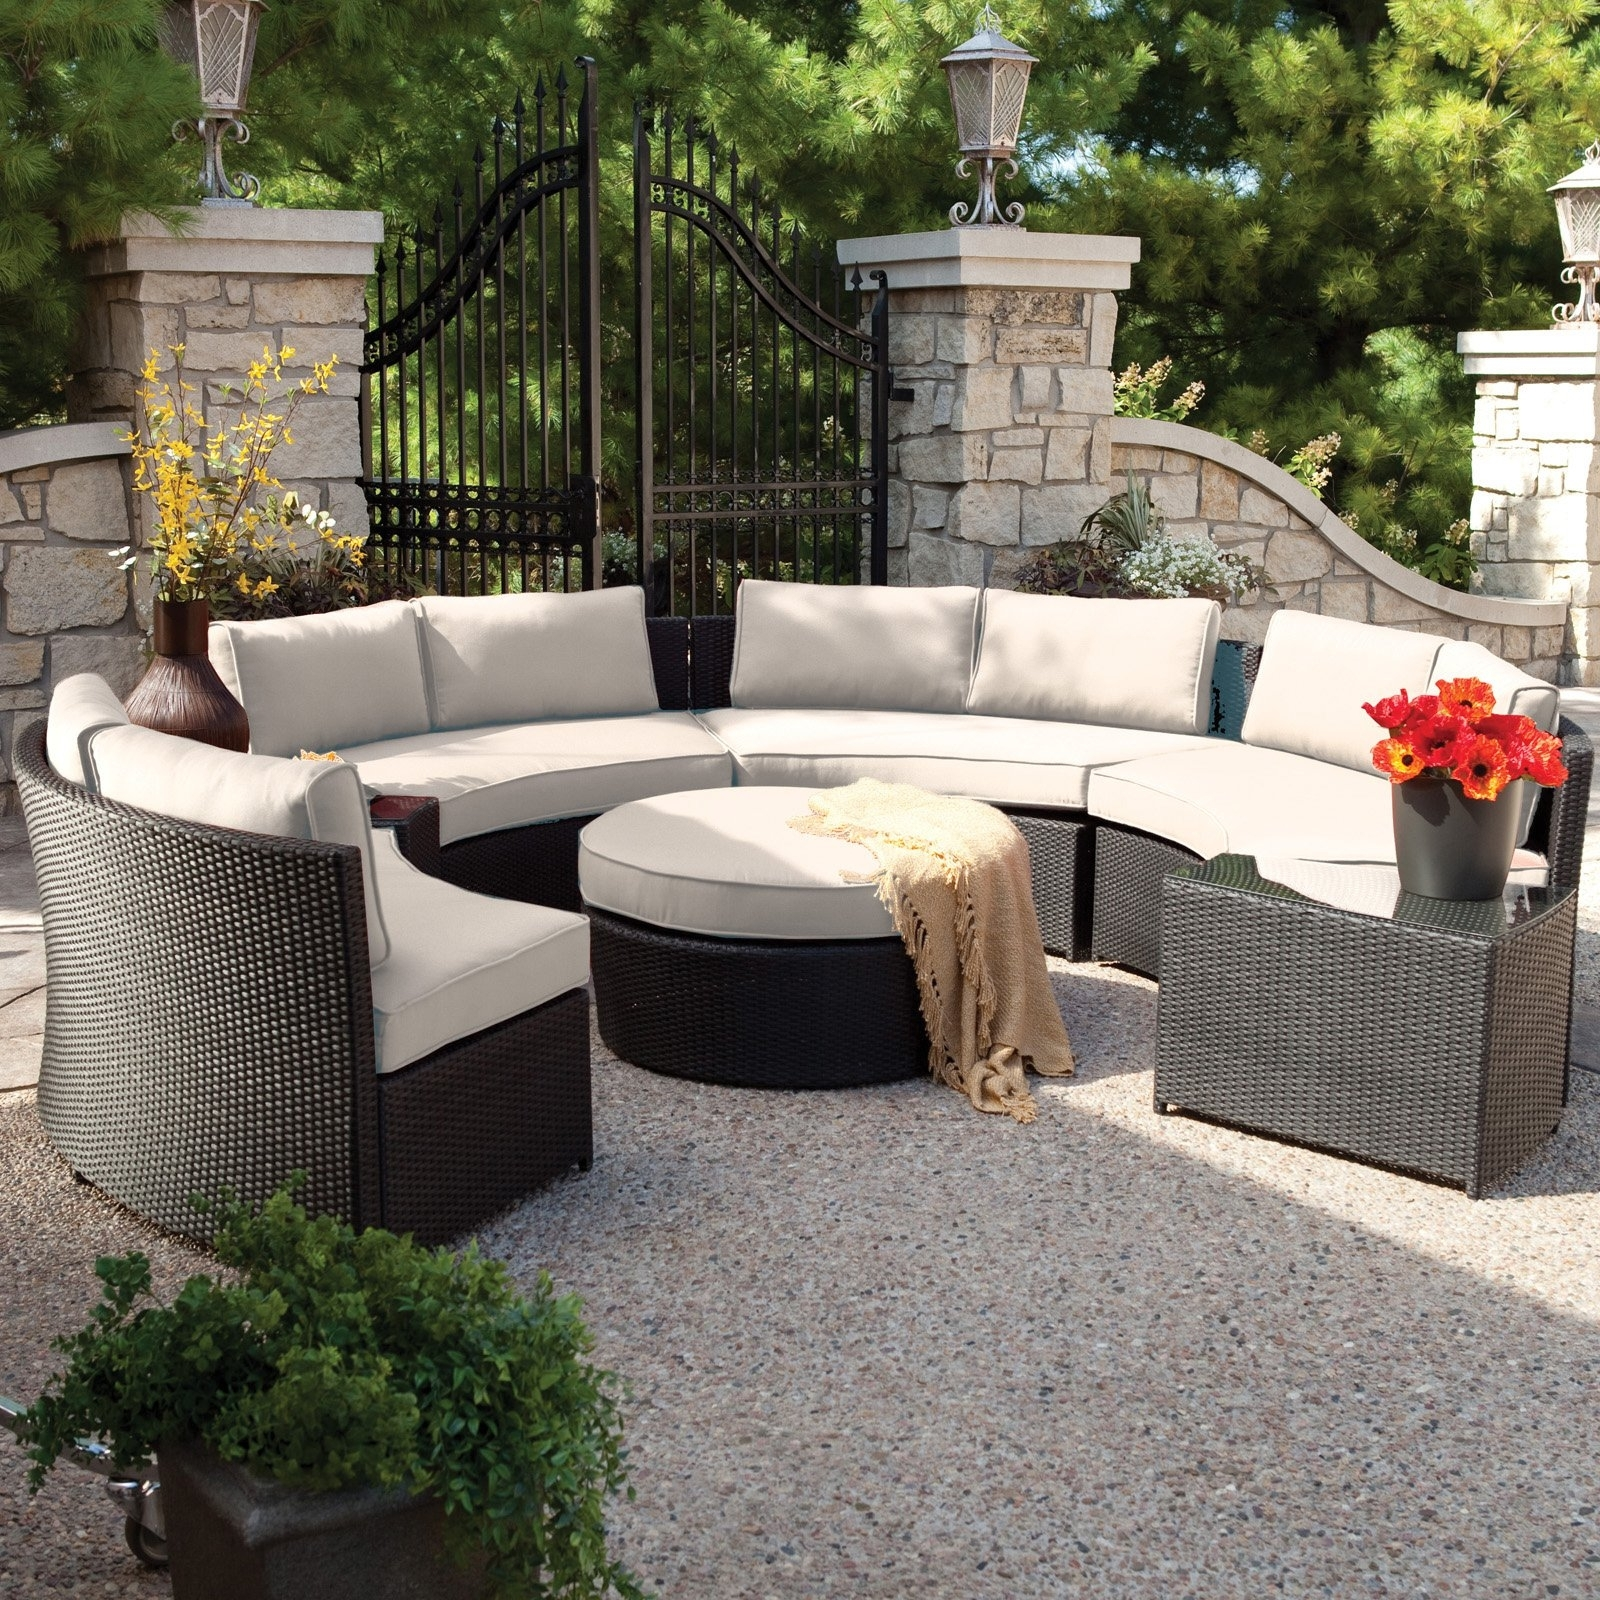 Patio Sofas Pertaining To Well Known Belham Living Meridian Round Outdoor Wicker Patio Furniture Set (View 13 of 20)